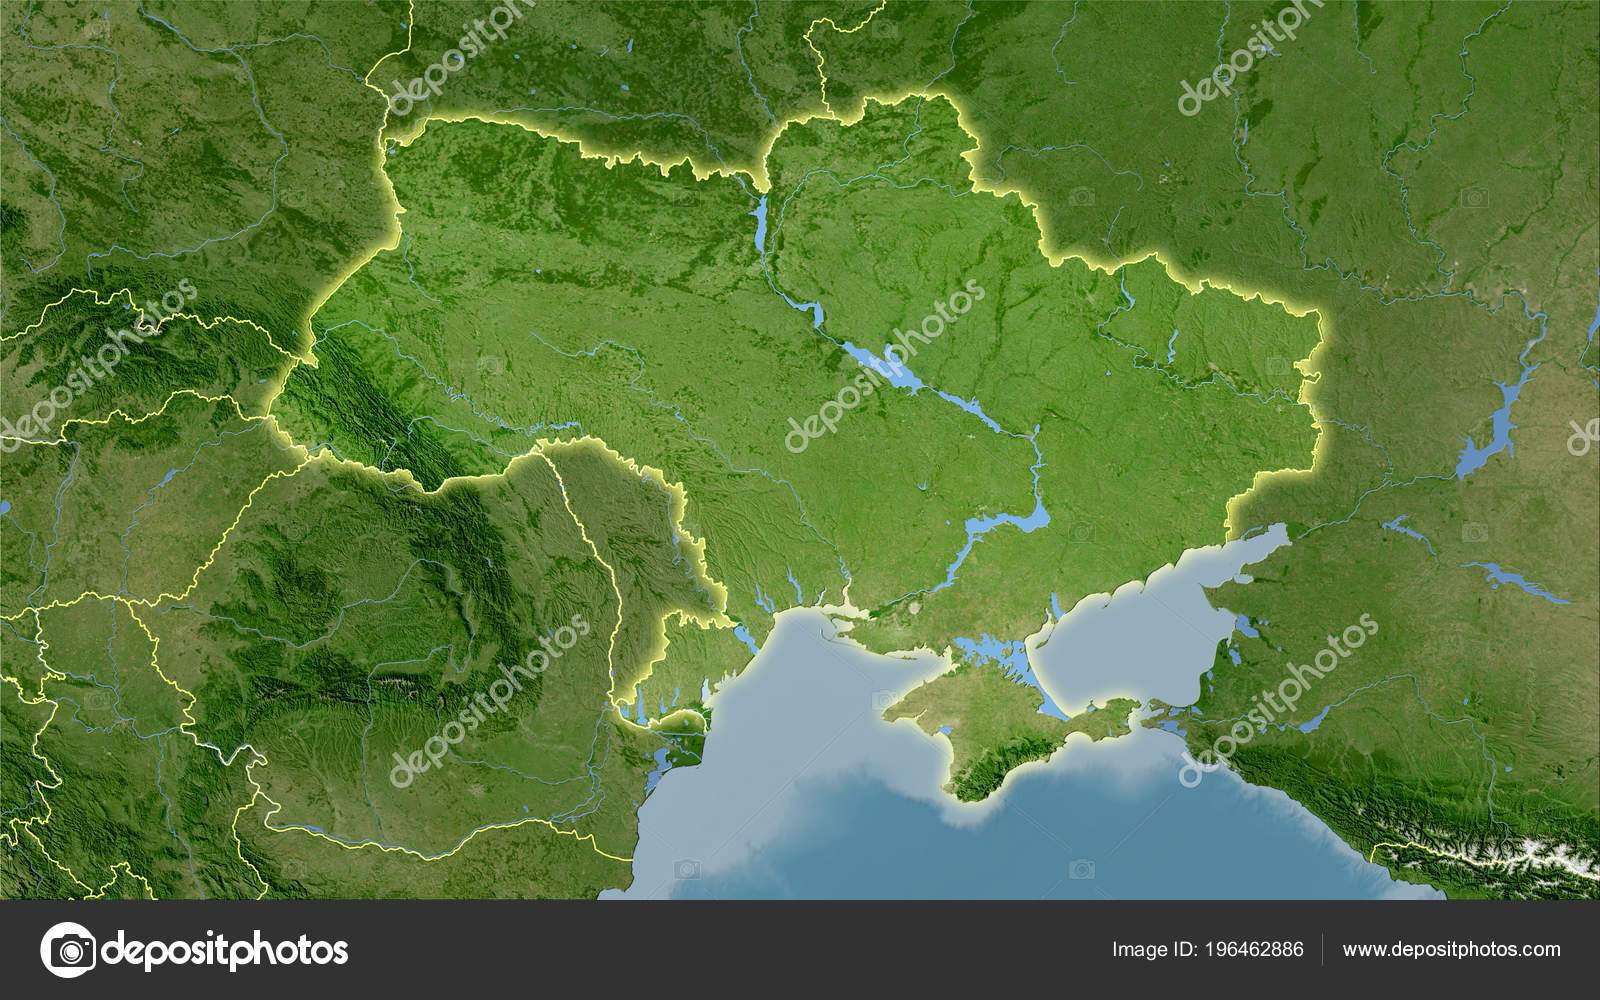 Kozatska buhta   Sevastopol' Google Satellite Map as well Moscow blocking maritime shipping to Ukrainian ports on Sea of Azov moreover Google Maps reveals secret North Korea from Russia road along border besides Ukraine Area On Satellite D Map Stock Illustration 1094435291 as well Satellite map of Msha s  Ukraine  Khmelnytskyi    Google™ likewise Snow cover in Europe   CBK PAN likewise Batrad   Batrad' Google Satellite Map further Glide over the satellite map of Ukraine outlined Motion Background moreover satellite map of ukraine   Satellite images   Map Pictures further Ivano Frankivsk  video  por tourist places  Satellite map together with Crimea as Seen in Satellite Images   ImaGeo moreover File Ukraine satellite orthographic     Wikimedia  mons additionally Political Map of Ukraine   Nations Online Project further Kemix Kemi Fl Map Satellite Enland F and Iceland Sweden Russia besides Show me a map of ukraine  854311 together with Ukraine Area Satellite Map Stereographic Projection Raw  position. on satellite map ukraine